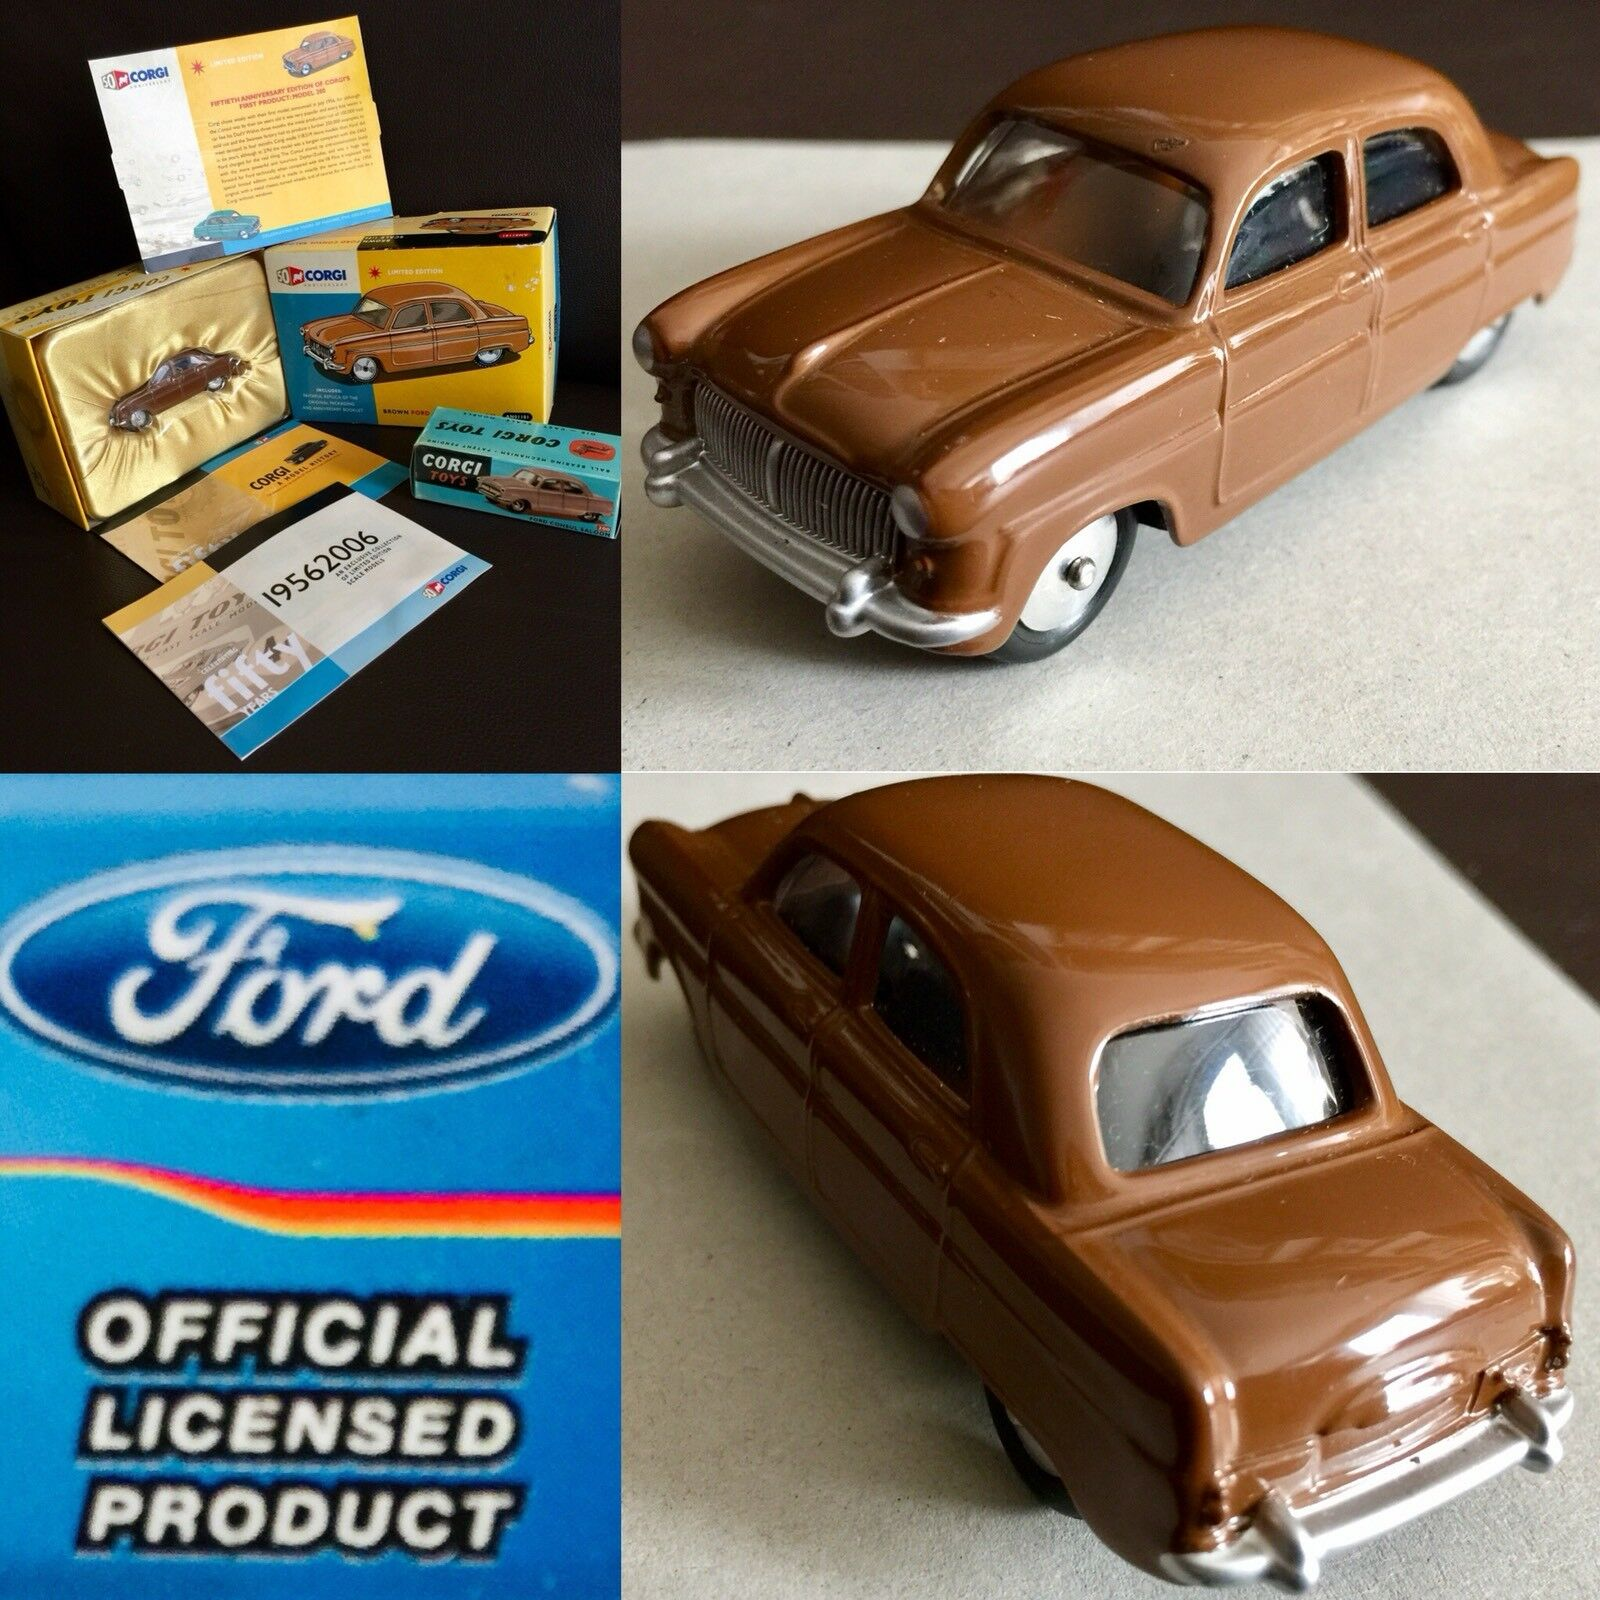 50th Anniversary Limited Edition of Corgi's First Ever Product 1956 Ford Consul